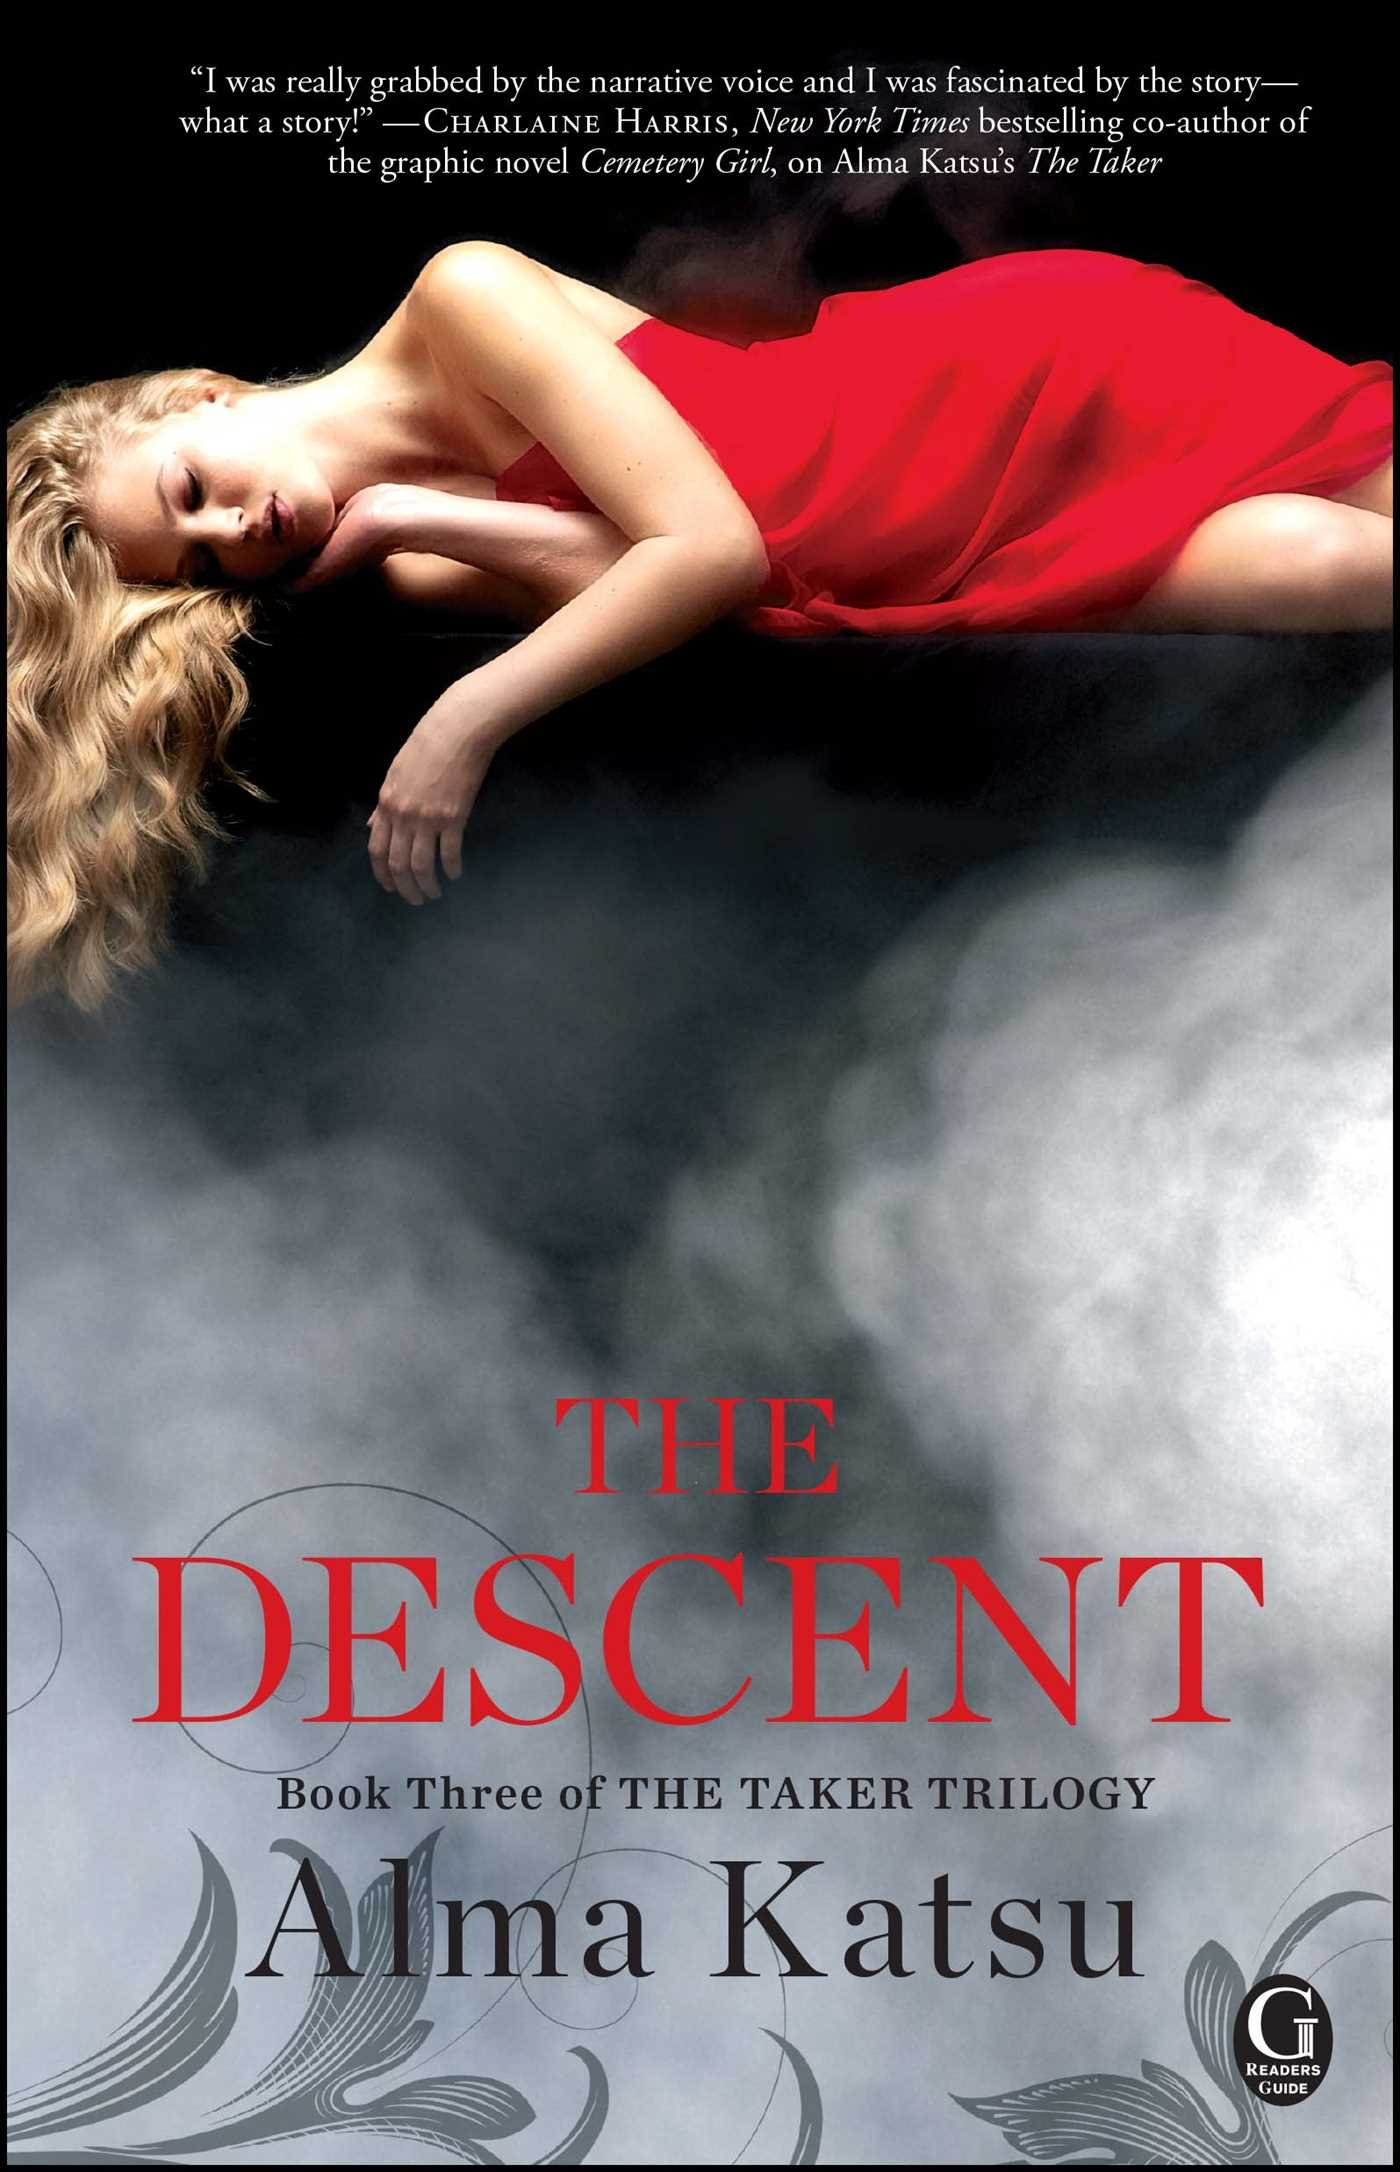 The Descent: Book Three Of The Taker Trilogy: Alma Katsu: 9781451651829:  Amazon: Books